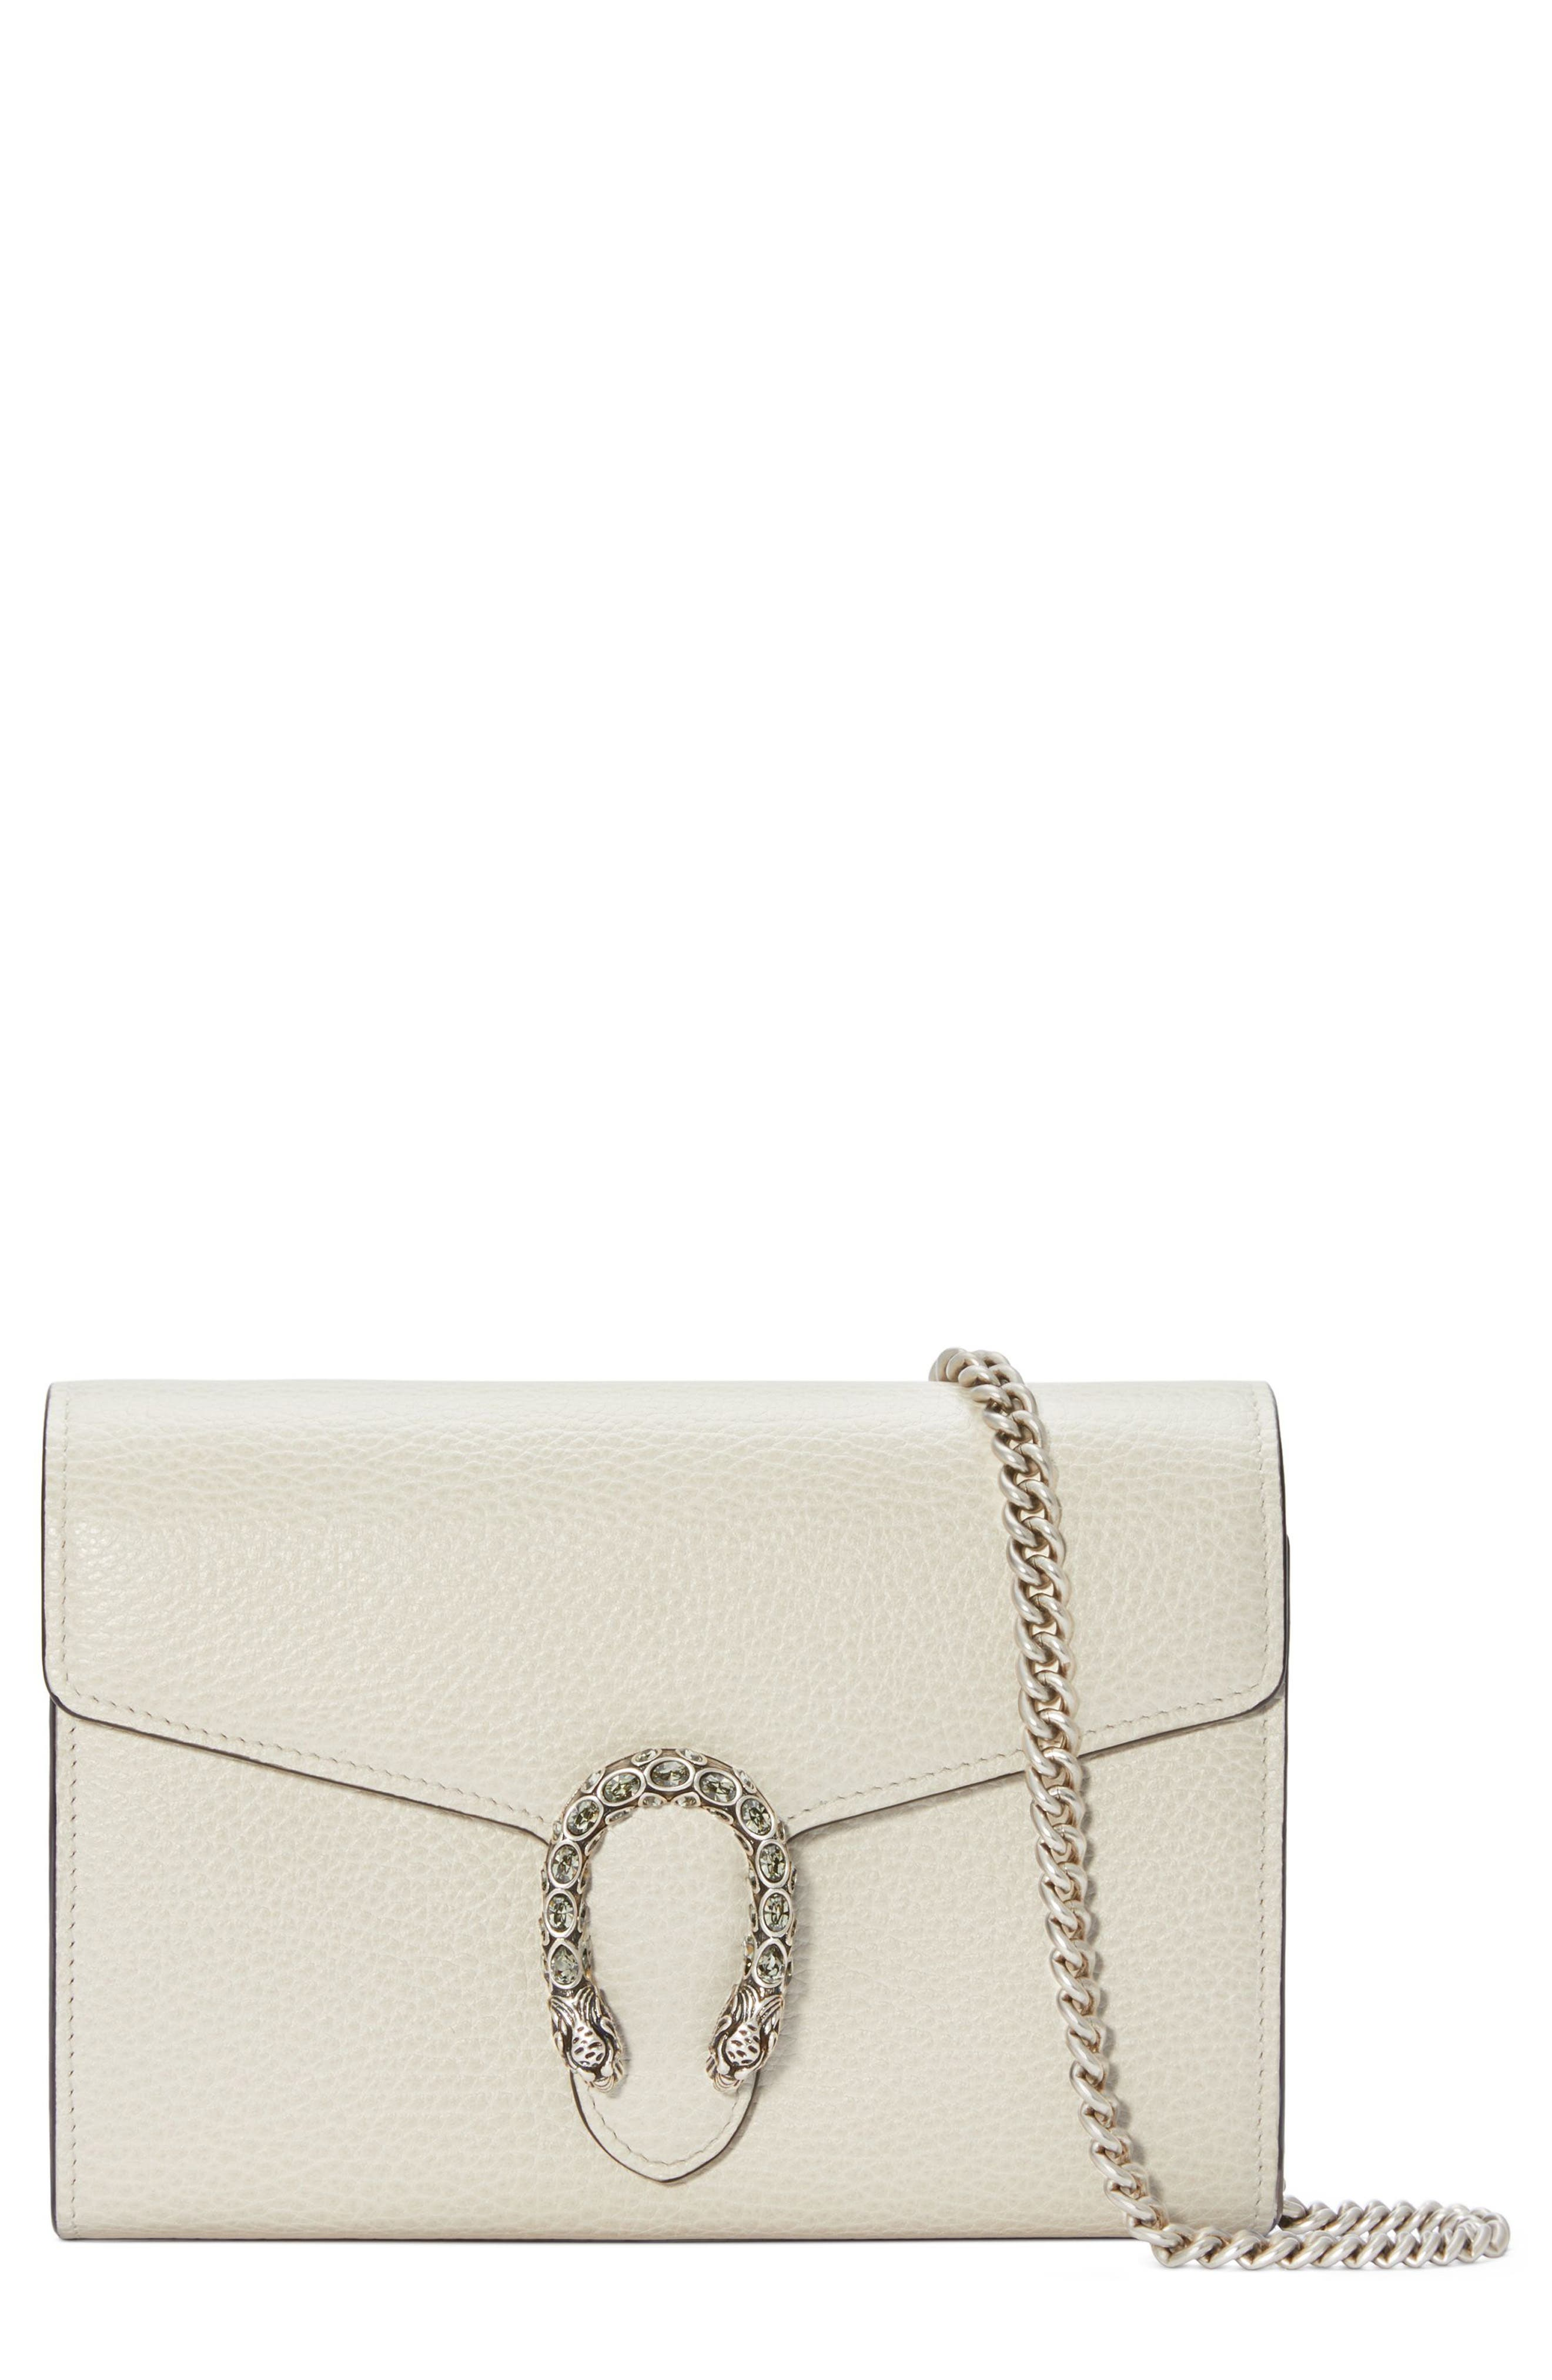 Small Dionysus Leather Clutch,                         Main,                         color, MYSTIC WHITE/ BLACK DIAMOND